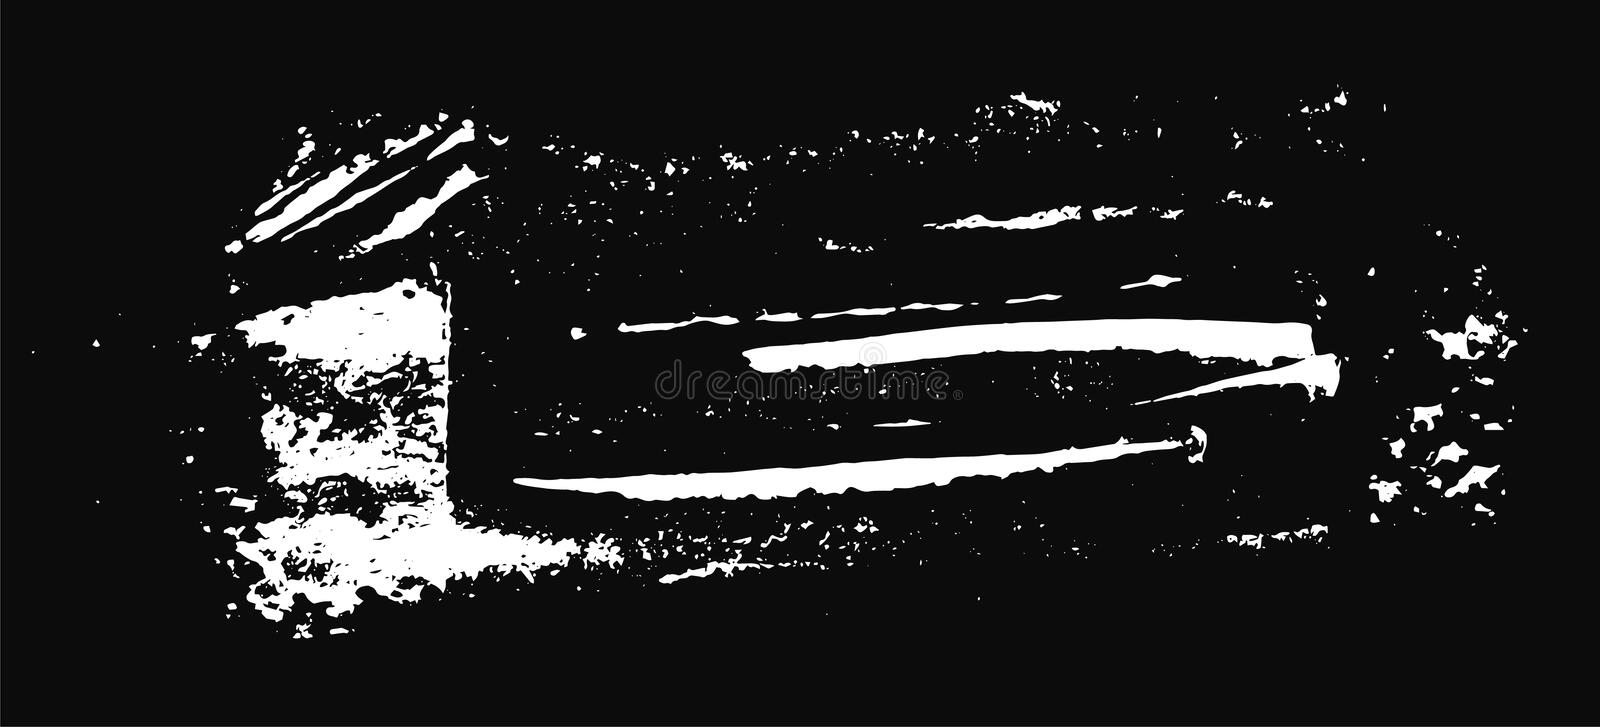 Grunge texture. White brush on black. Vector template. Urban Background. Dust Overlay Distress Grain. Hand drawn illustration. Abstract shape for your design royalty free illustration